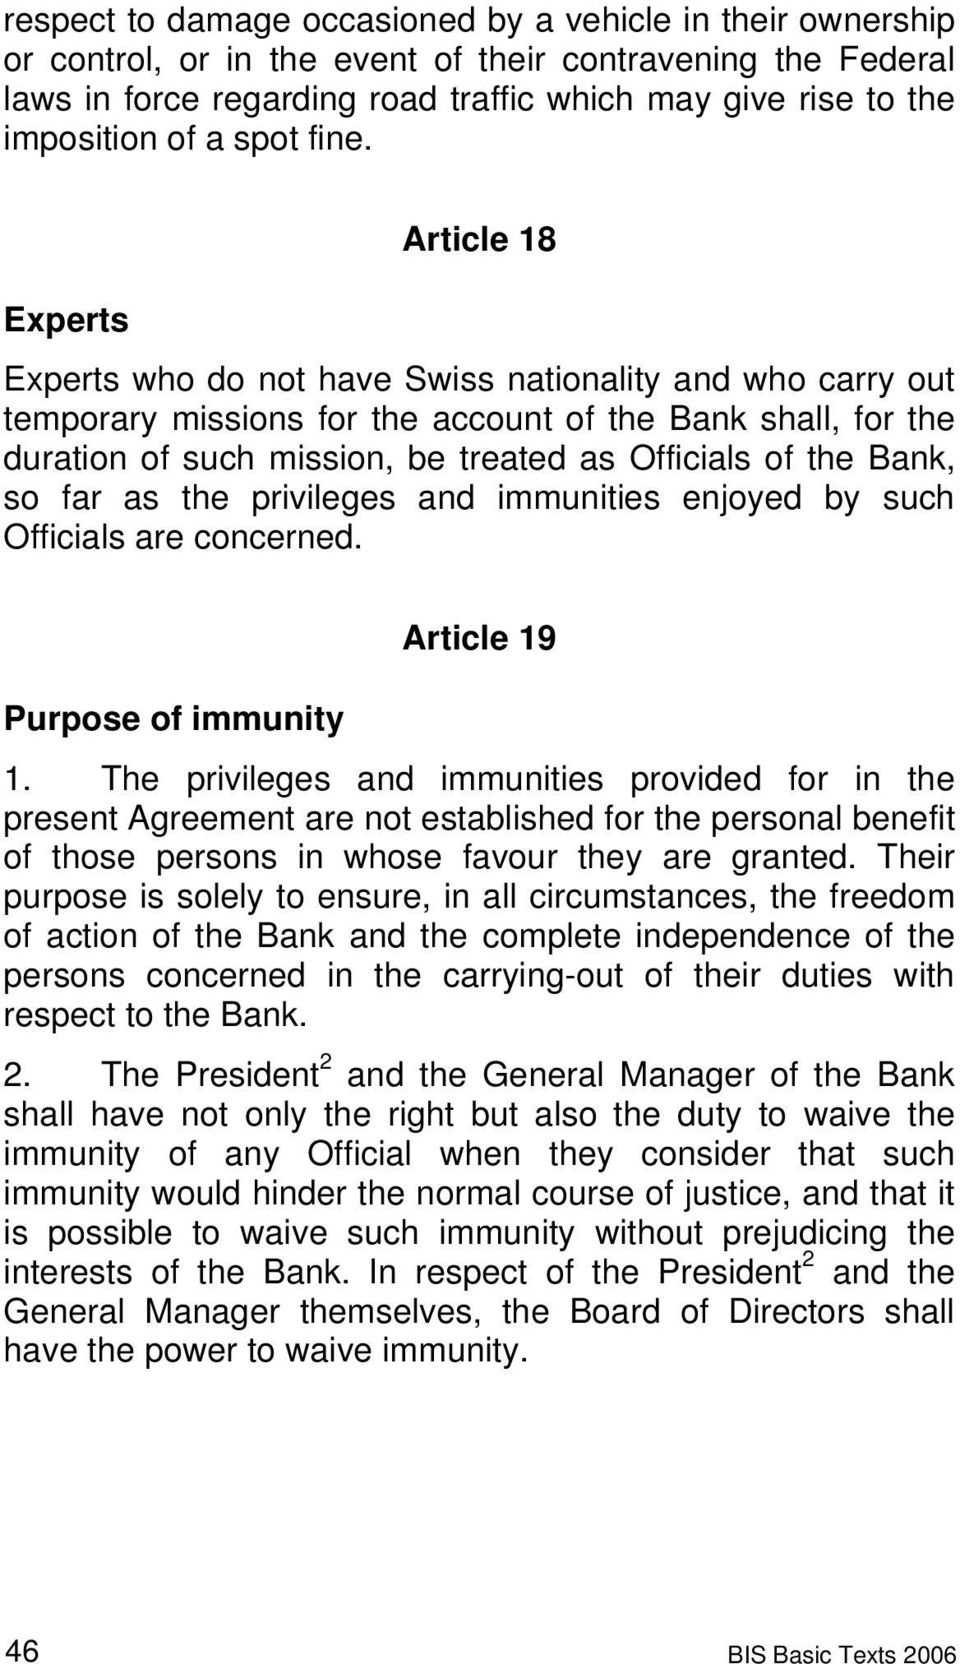 Article 18 Experts Experts who do not have Swiss nationality and who carry out temporary missions for the account of the Bank shall, for the duration of such mission, be treated as Officials of the